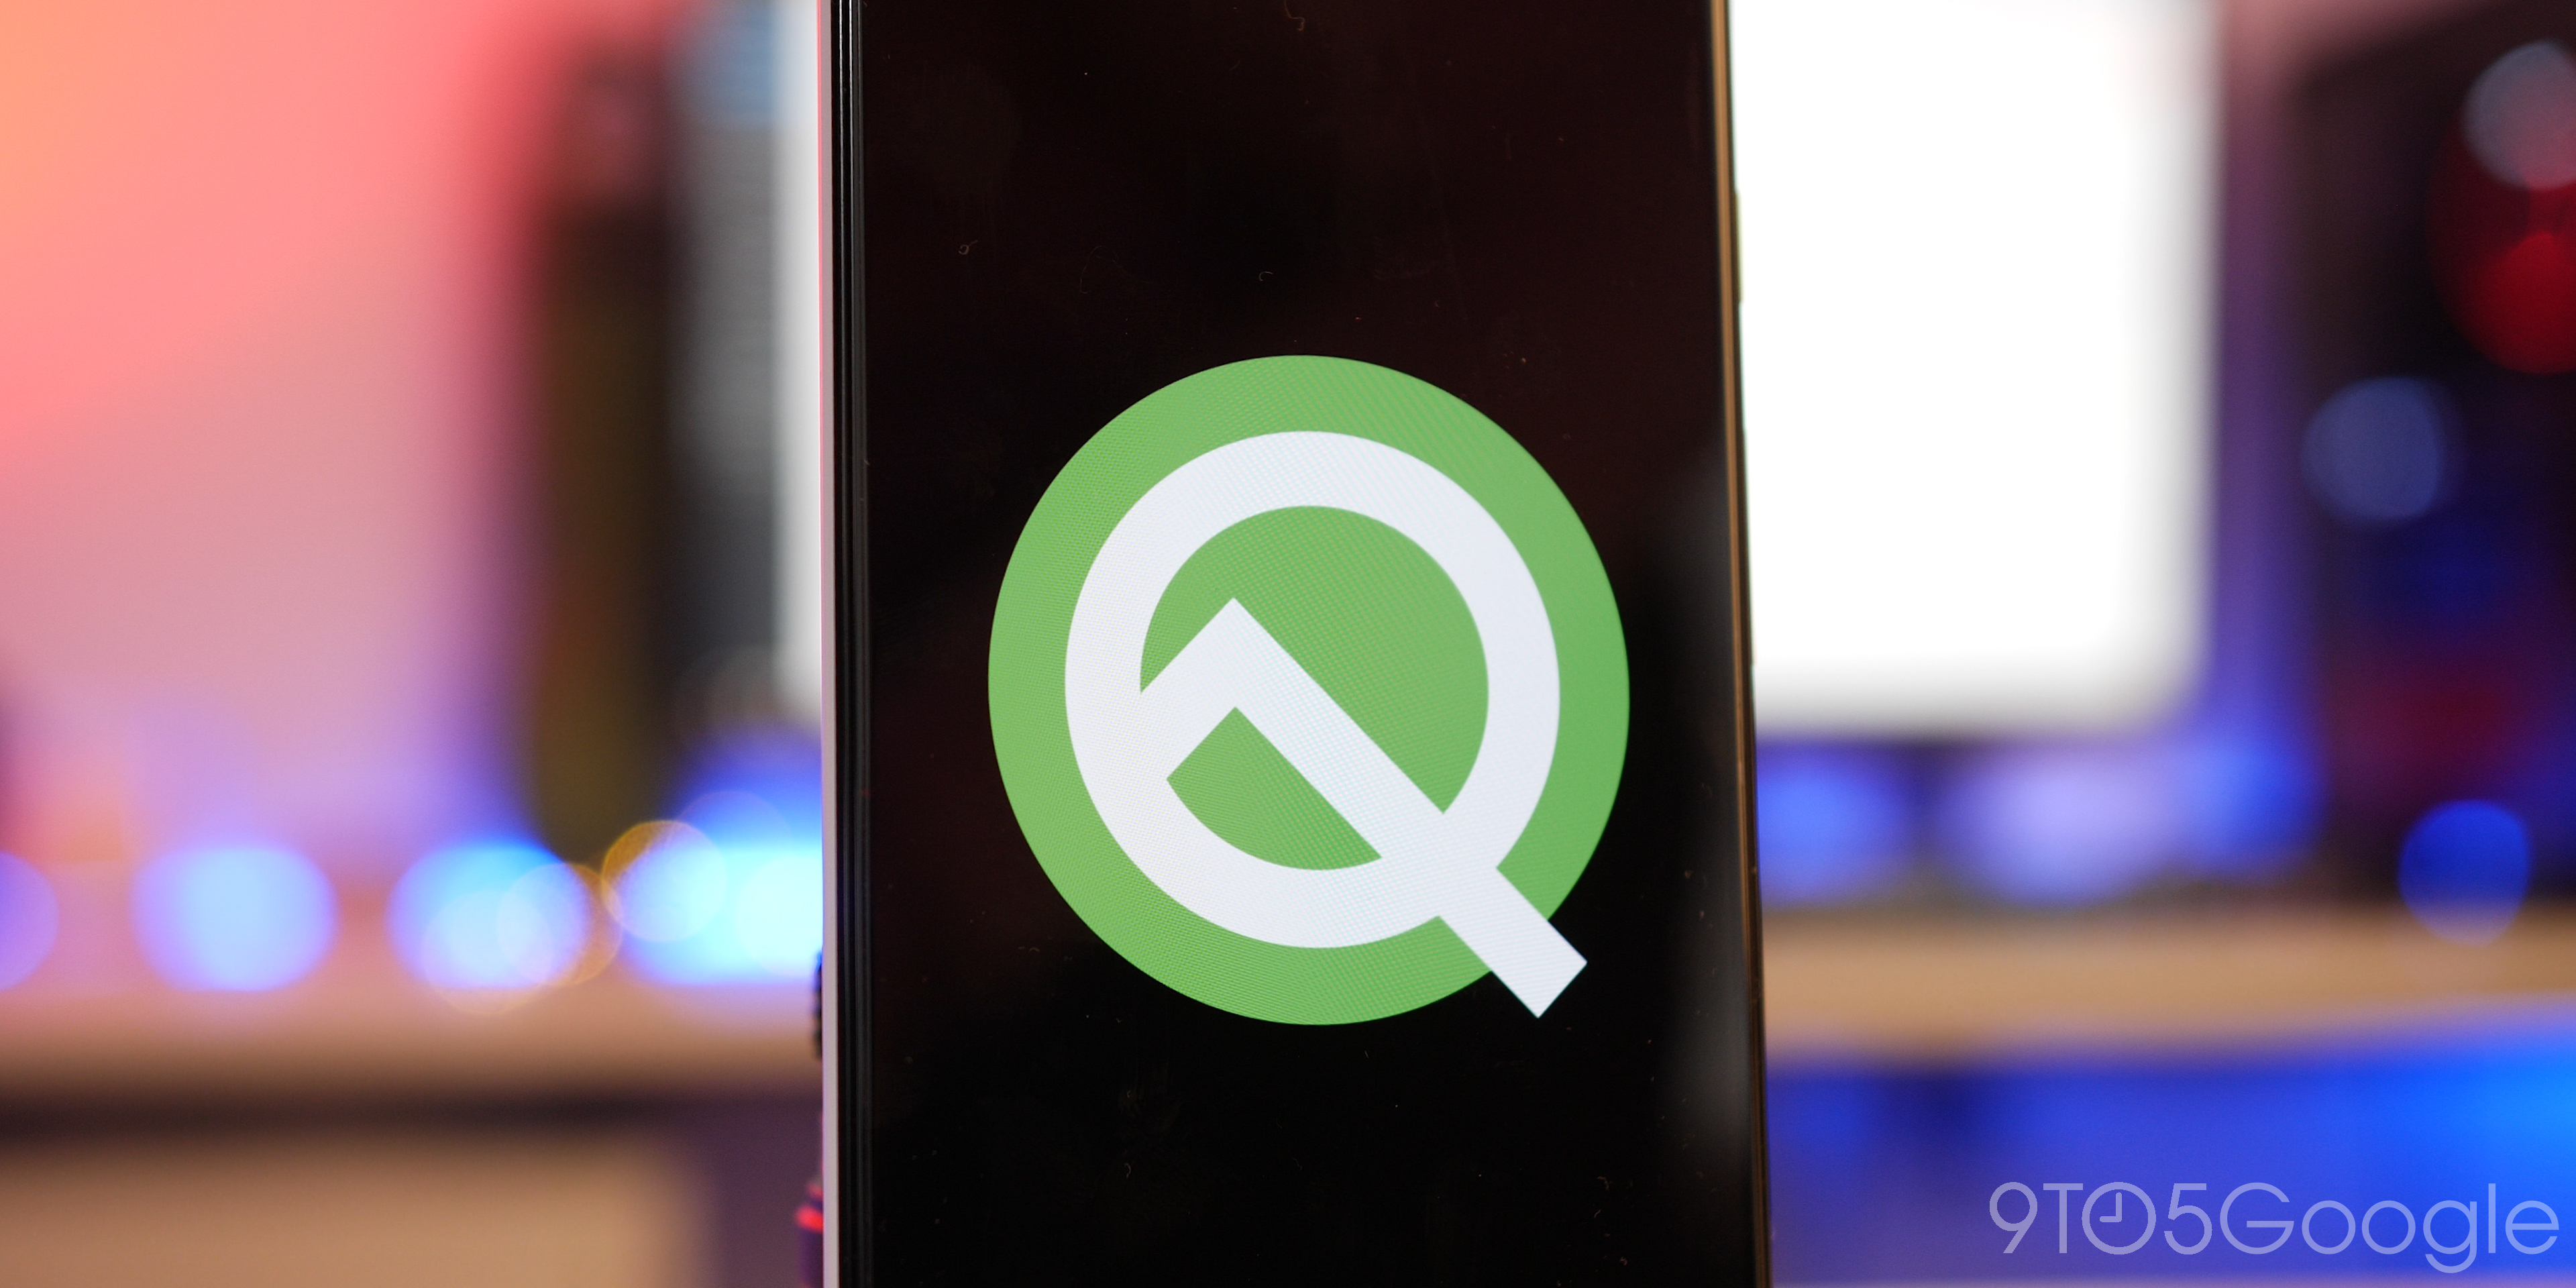 Android Q Beta 5: Apps are granted full location access in deliberate test